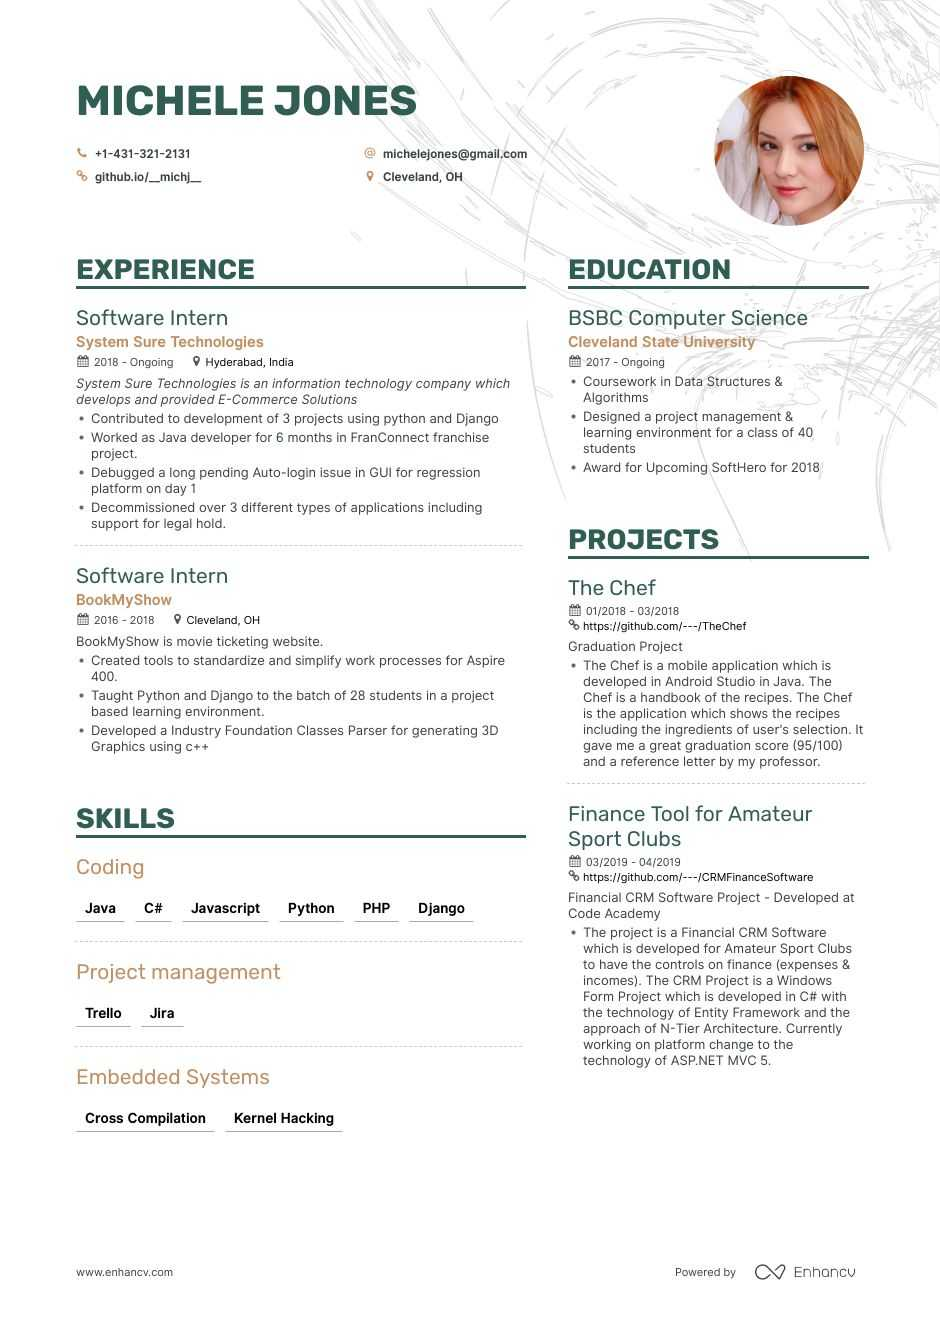 10 Entry Level Software Engineer Resume Examples For 2019